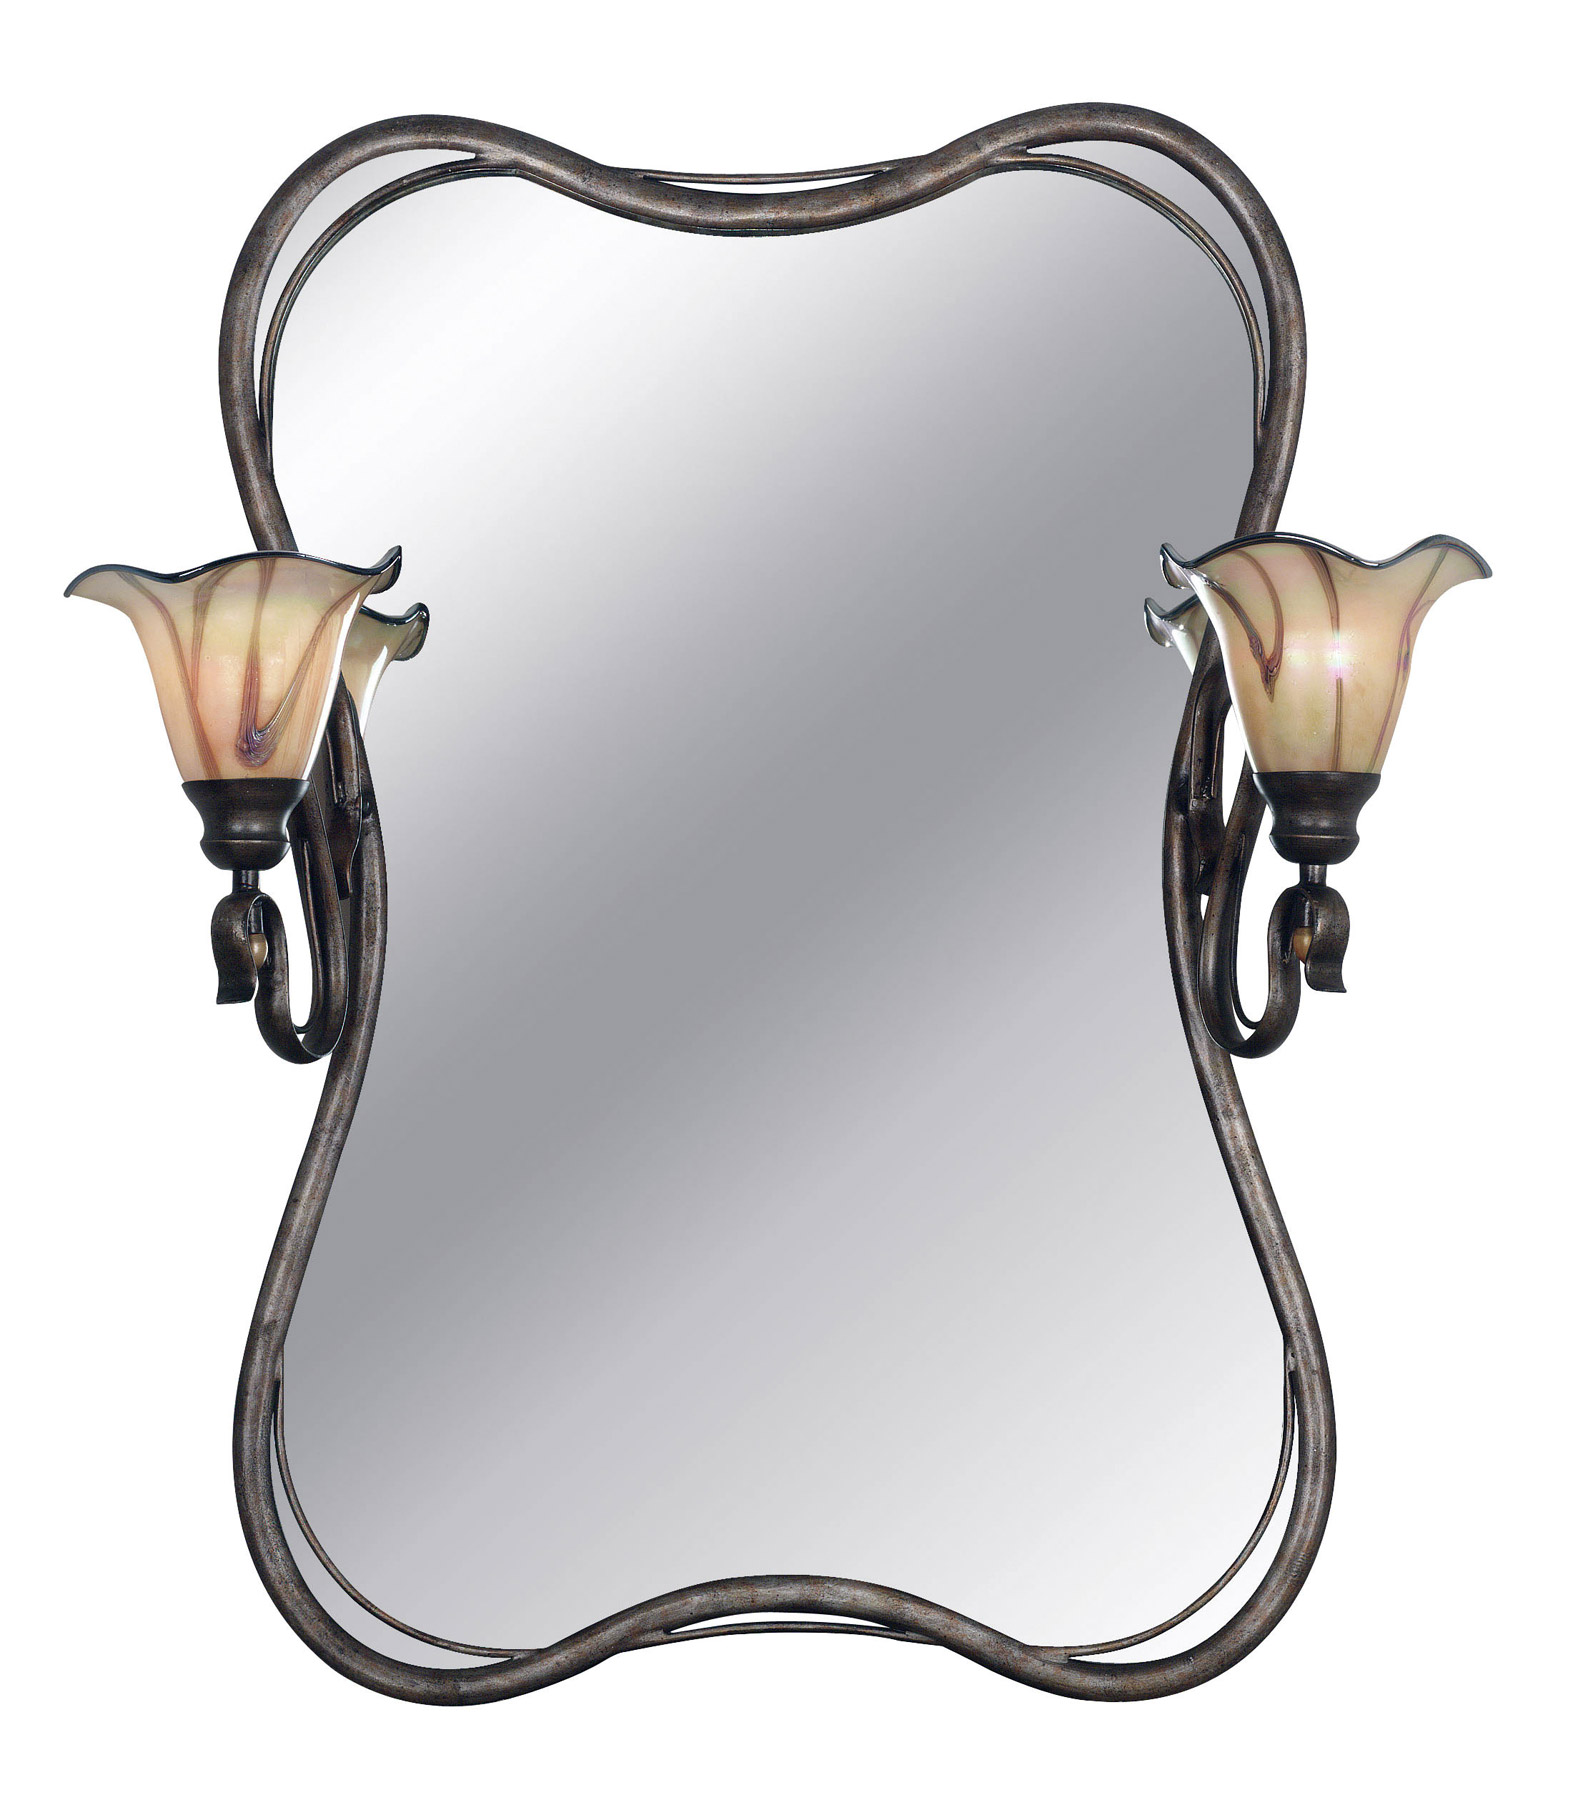 Kenroy Home 90890TS Inverness 2 Light Vanity Mirror. Mirrors With Lights   Lamps Beautiful